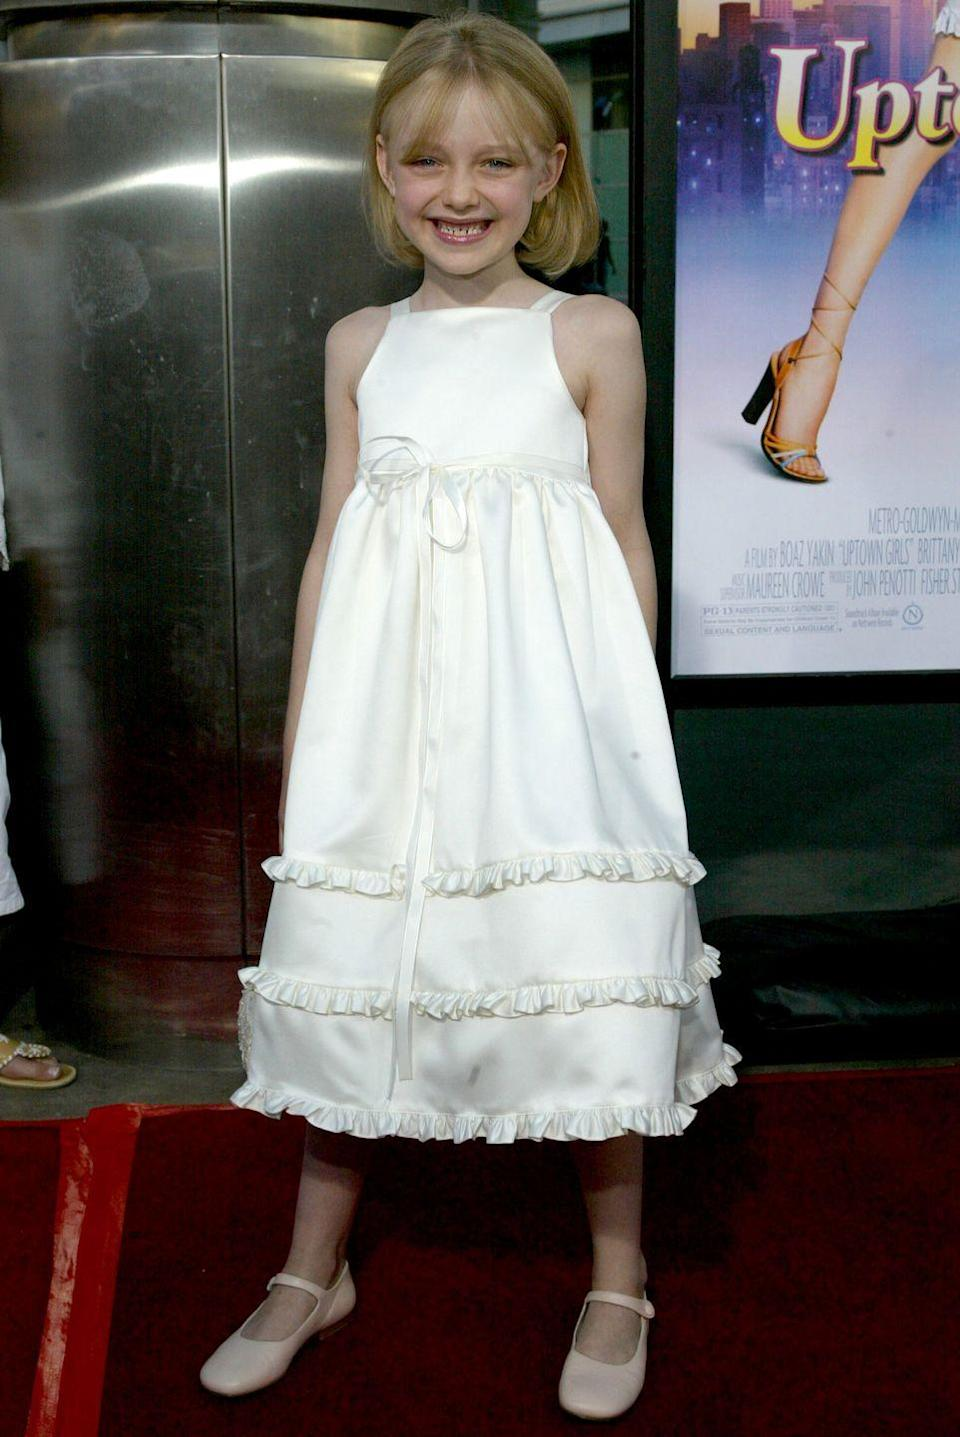 <p>During the 2000s, Dakota appeared in huge blockbusters like <em>Uptown Girls</em> and <em>War of the Worlds</em>. And at the age of seven, she had already earned a Screen Actors Guild award nomination for her role in <em>I Am Sam</em>.</p>